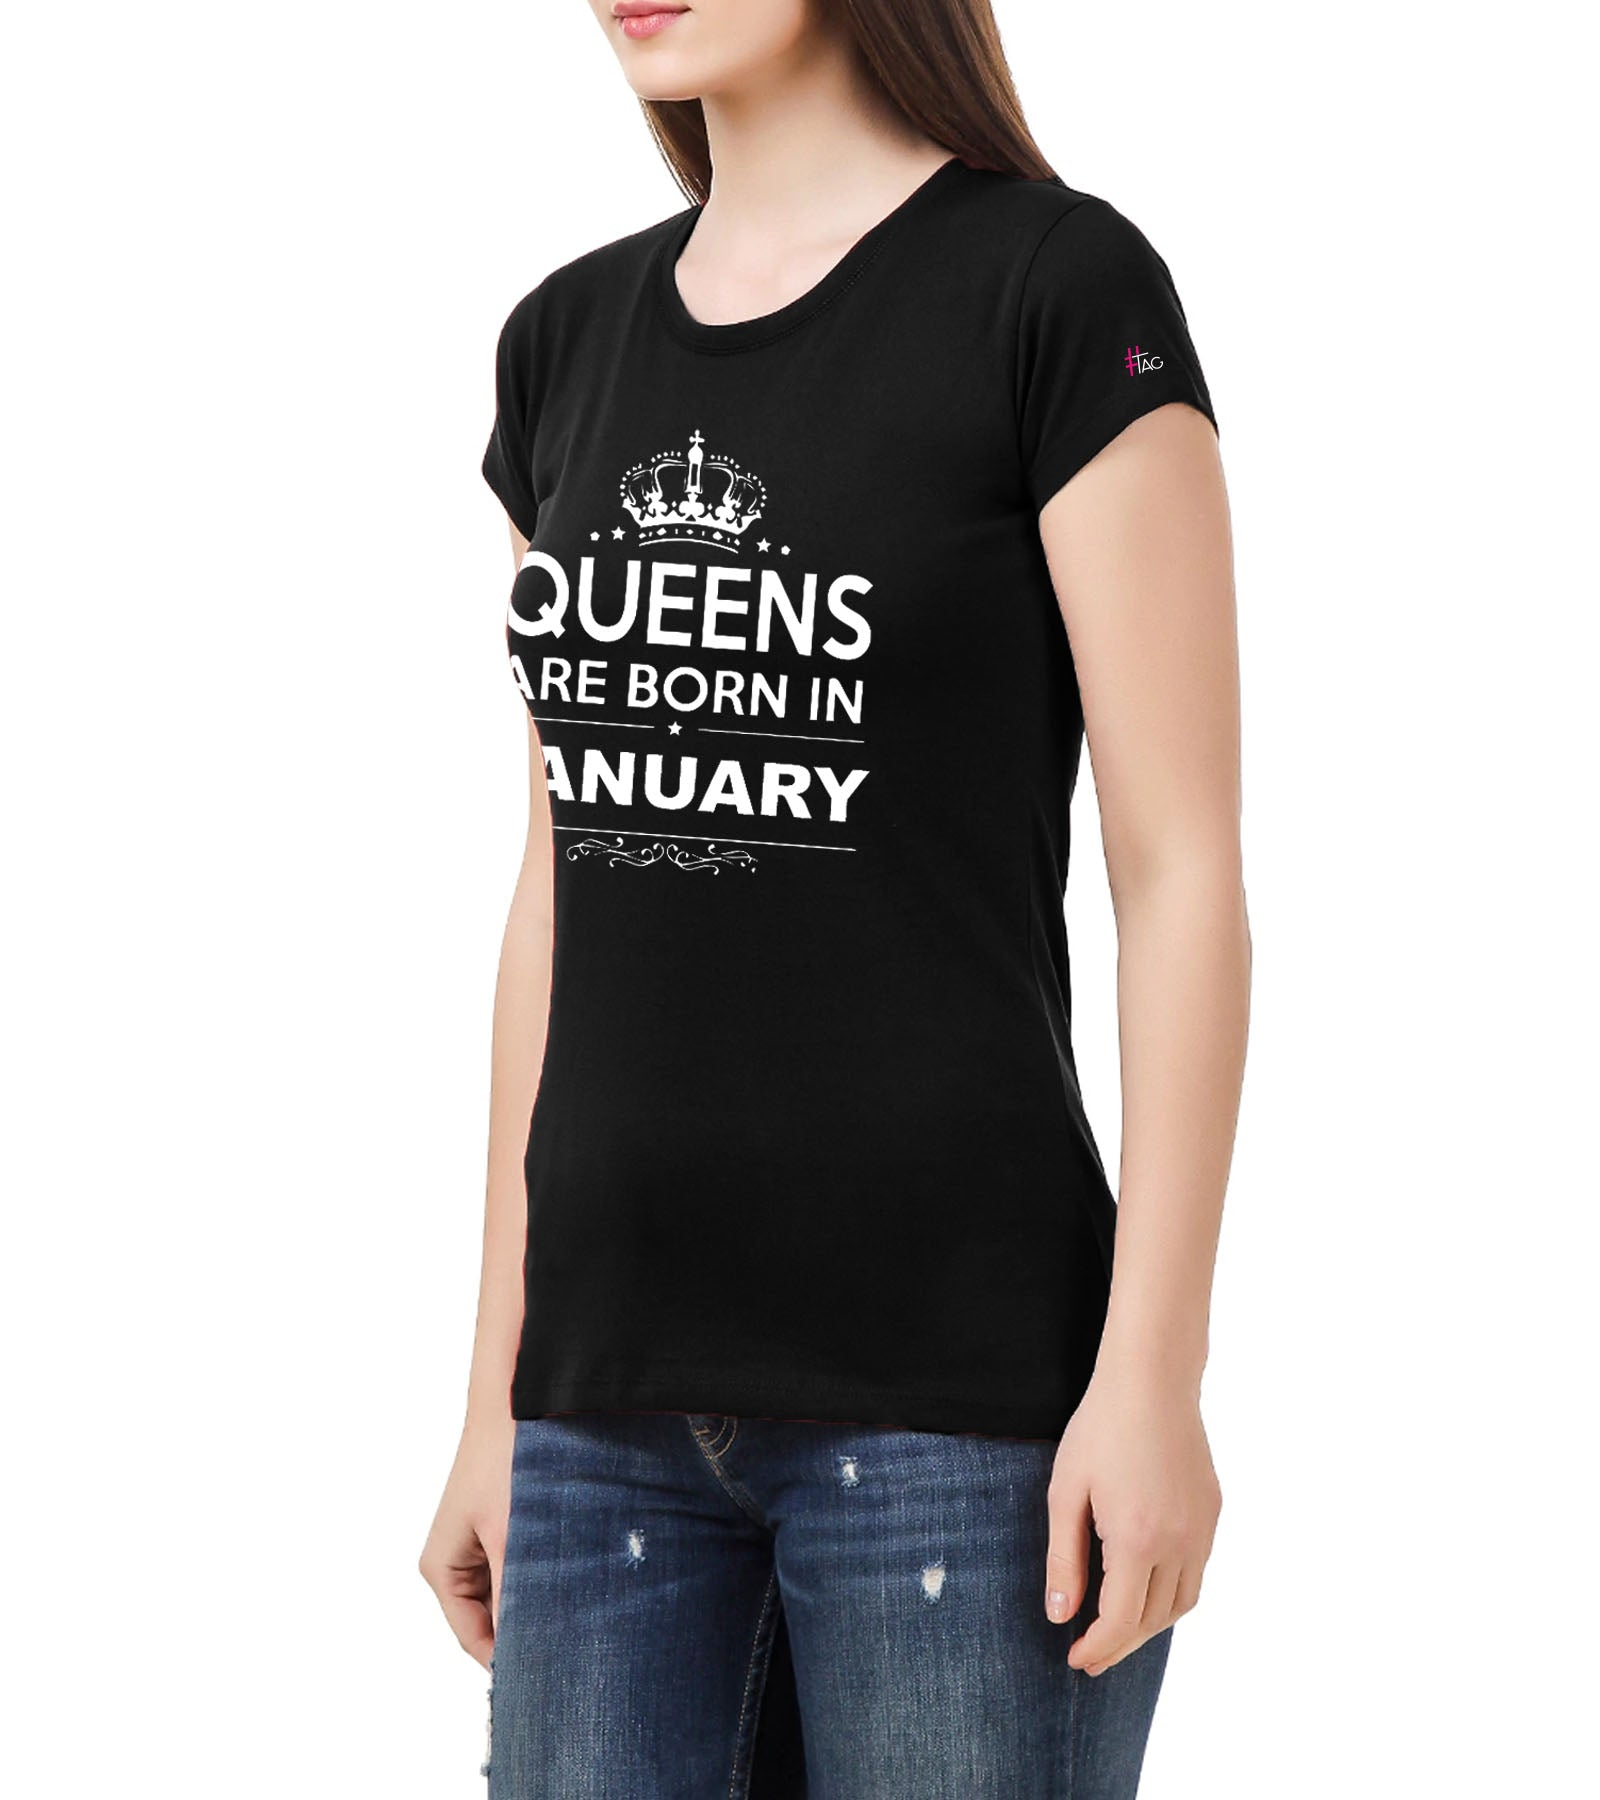 aad47dfa890 Birthday Queen 1.0 - Crewneck T-shirt- Queens are Born in January